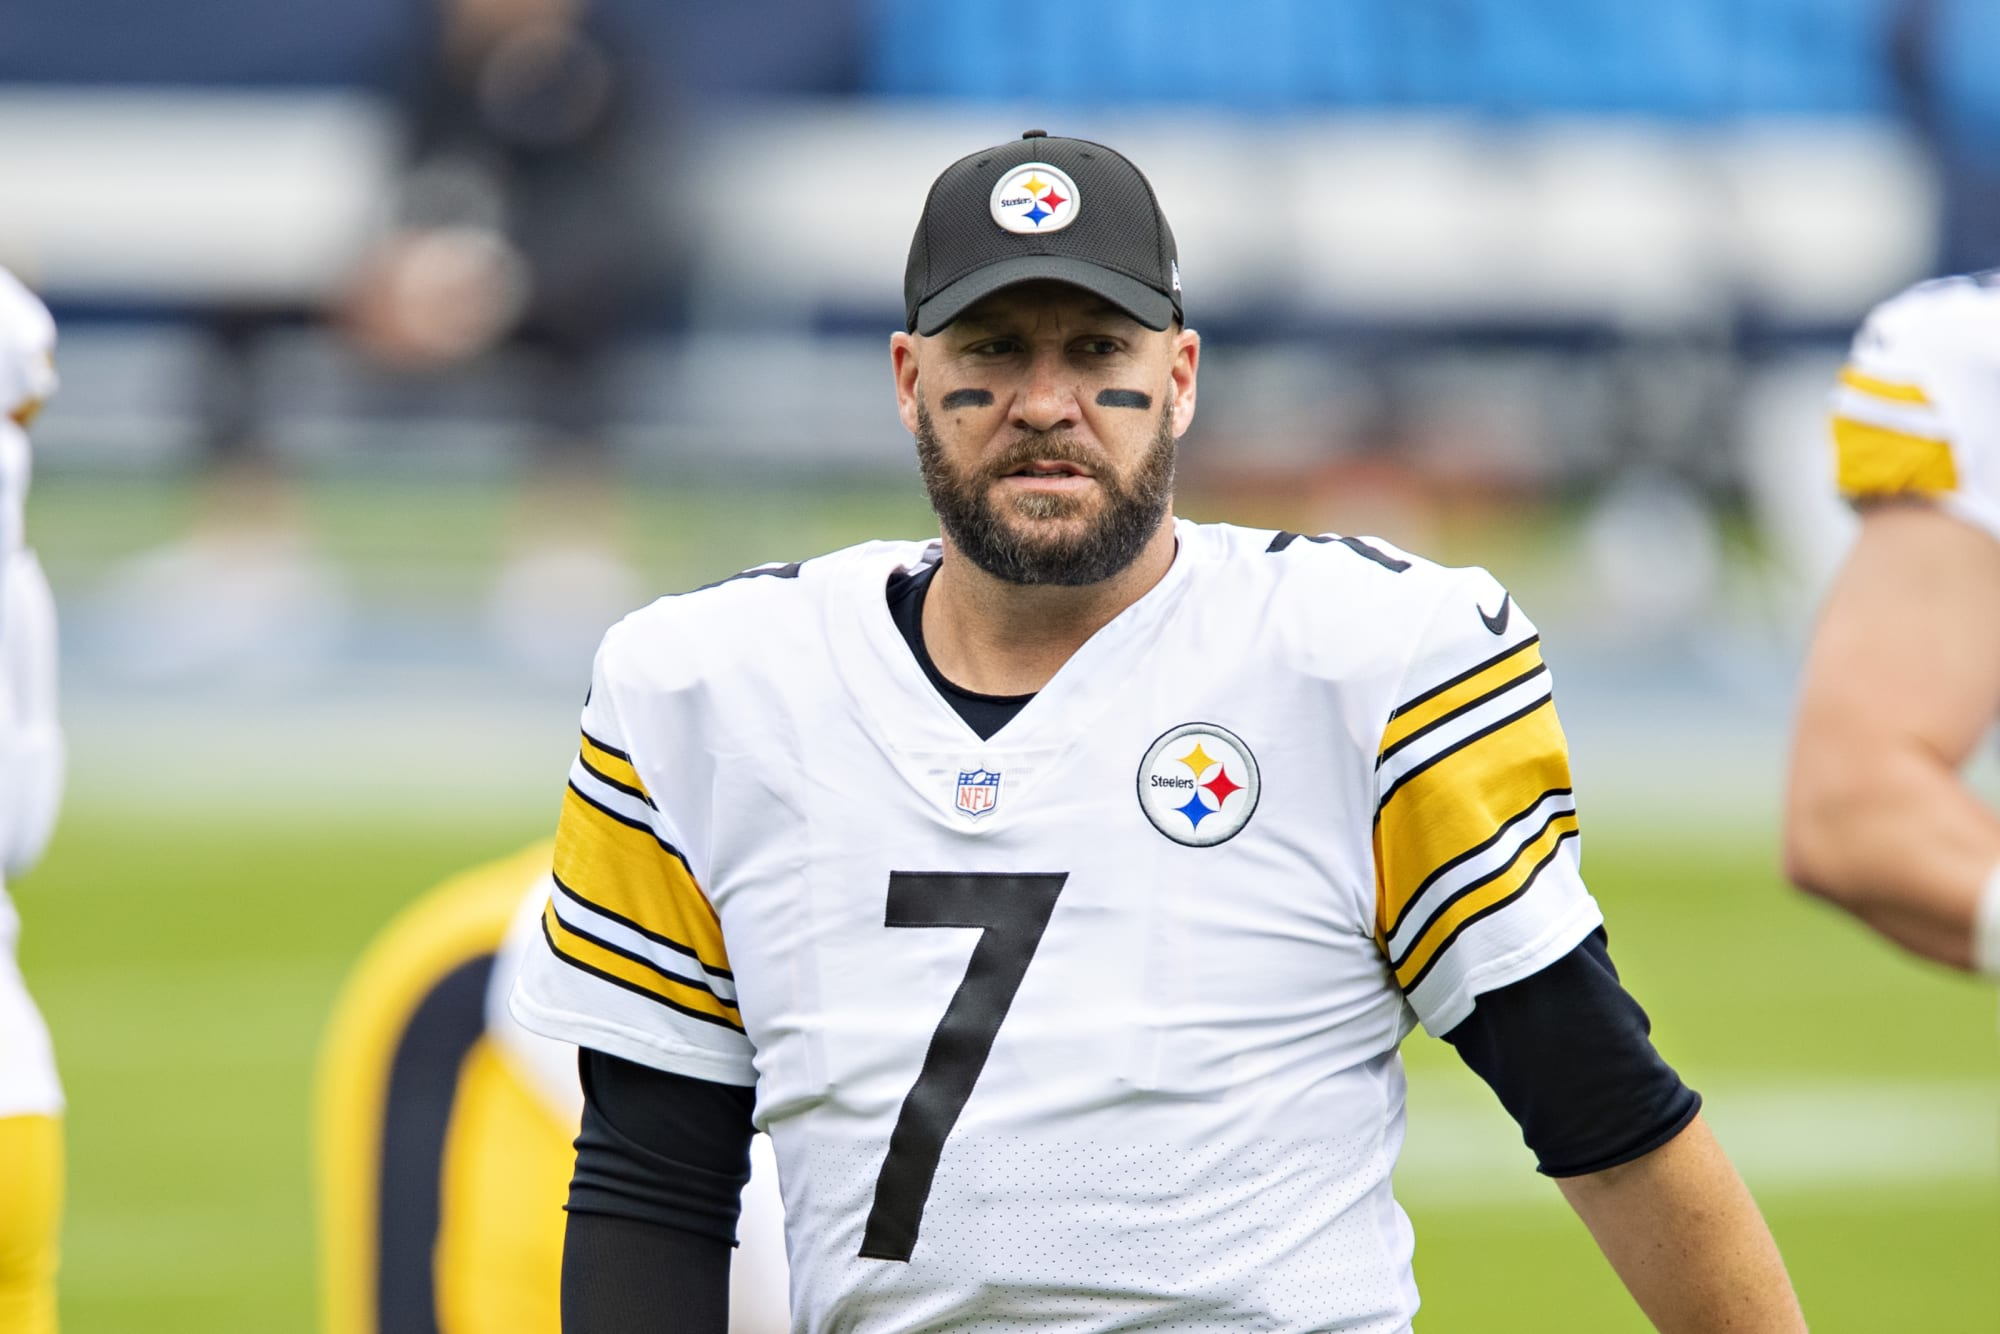 3 great things about Steelers extending Ben Roethlisberger's contract - Still Curtain